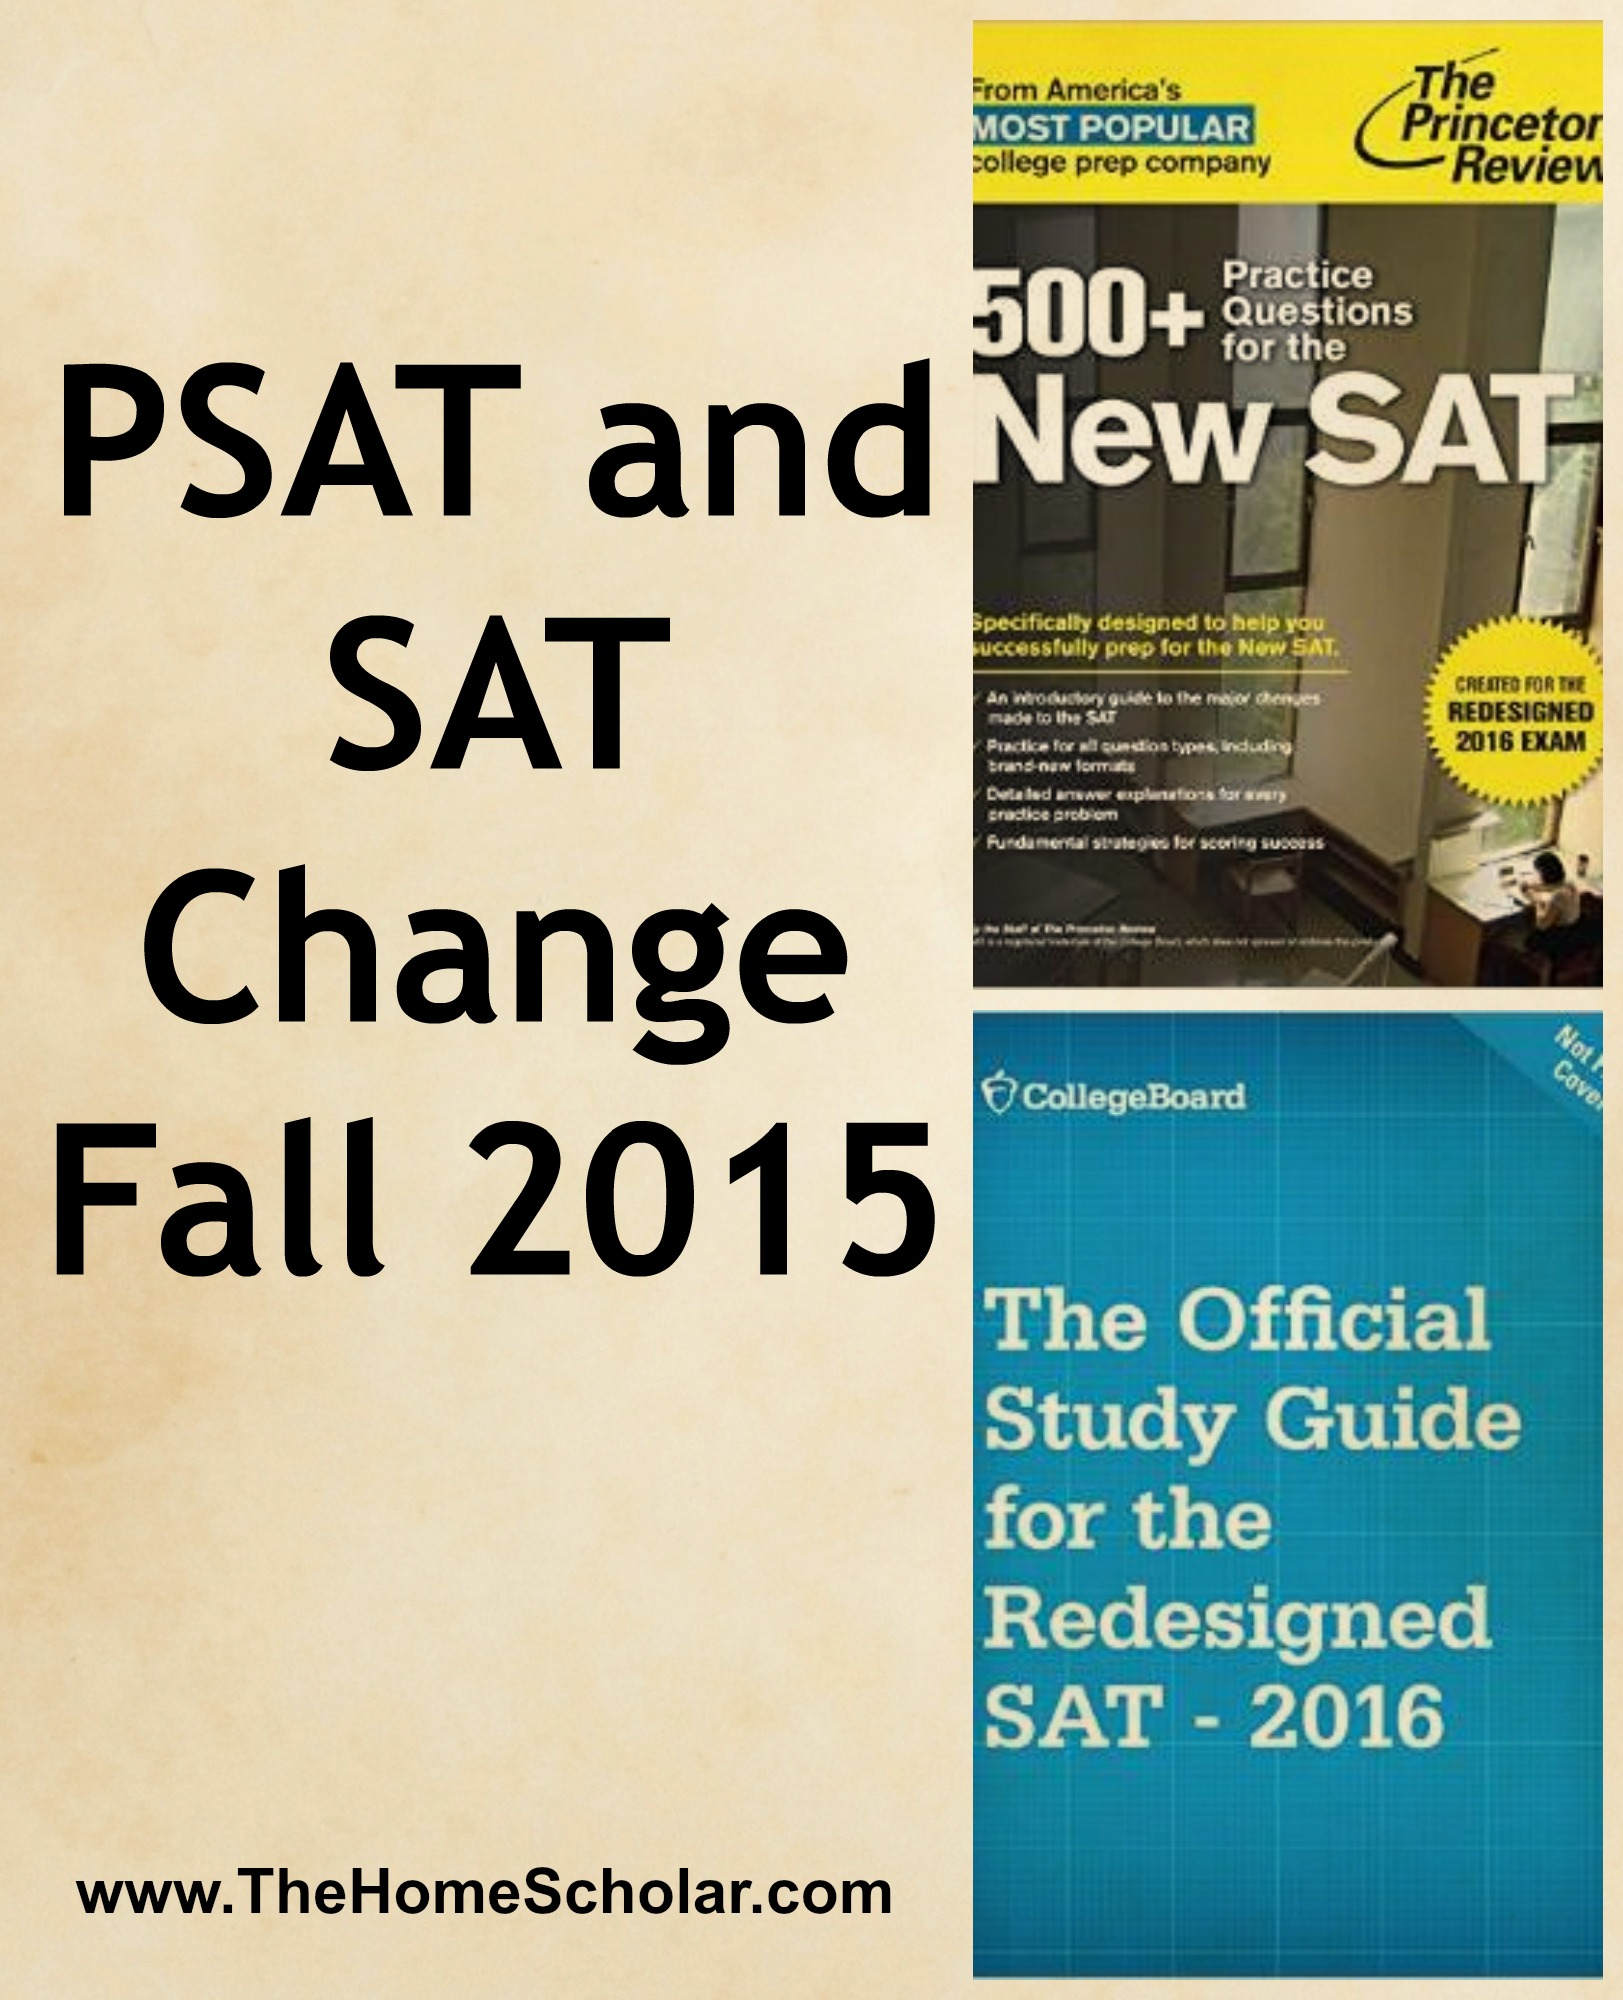 PSAT and SAT Change Fall 2015